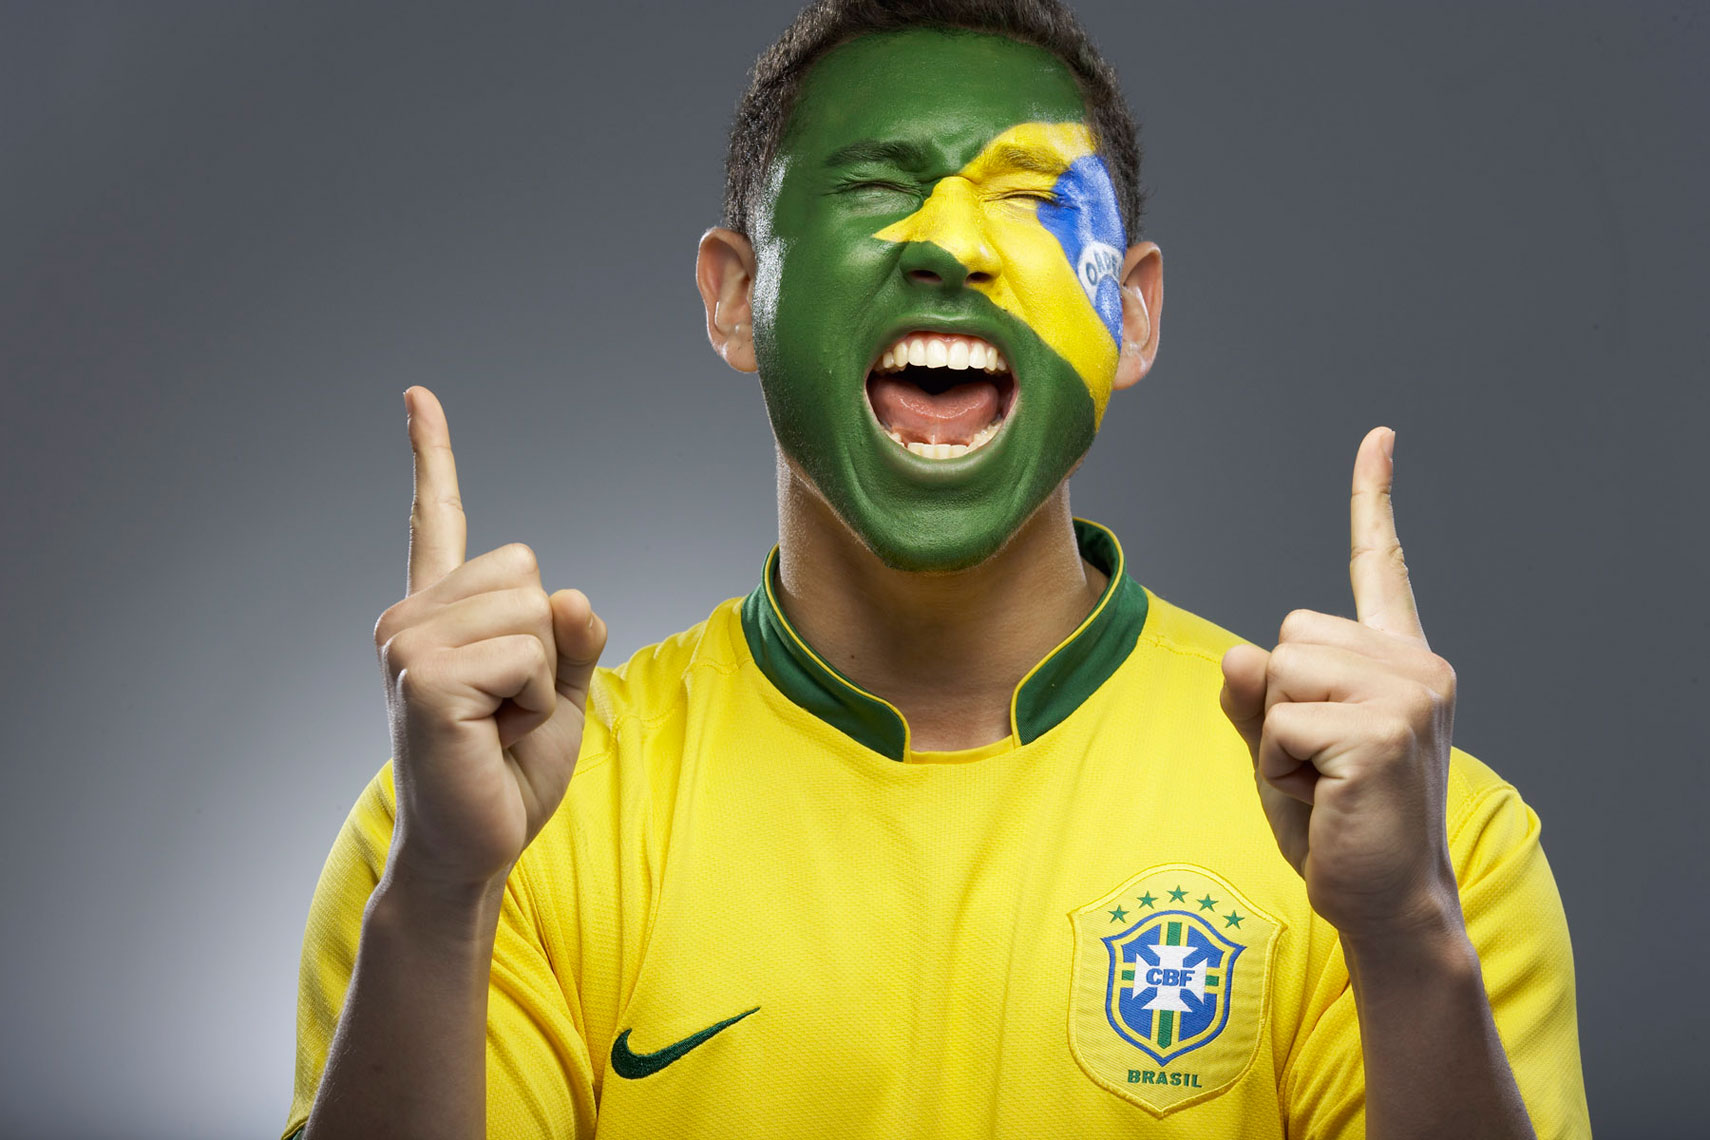 Brazilian Face Paint futbol football soccer fan photo by Monte Isom